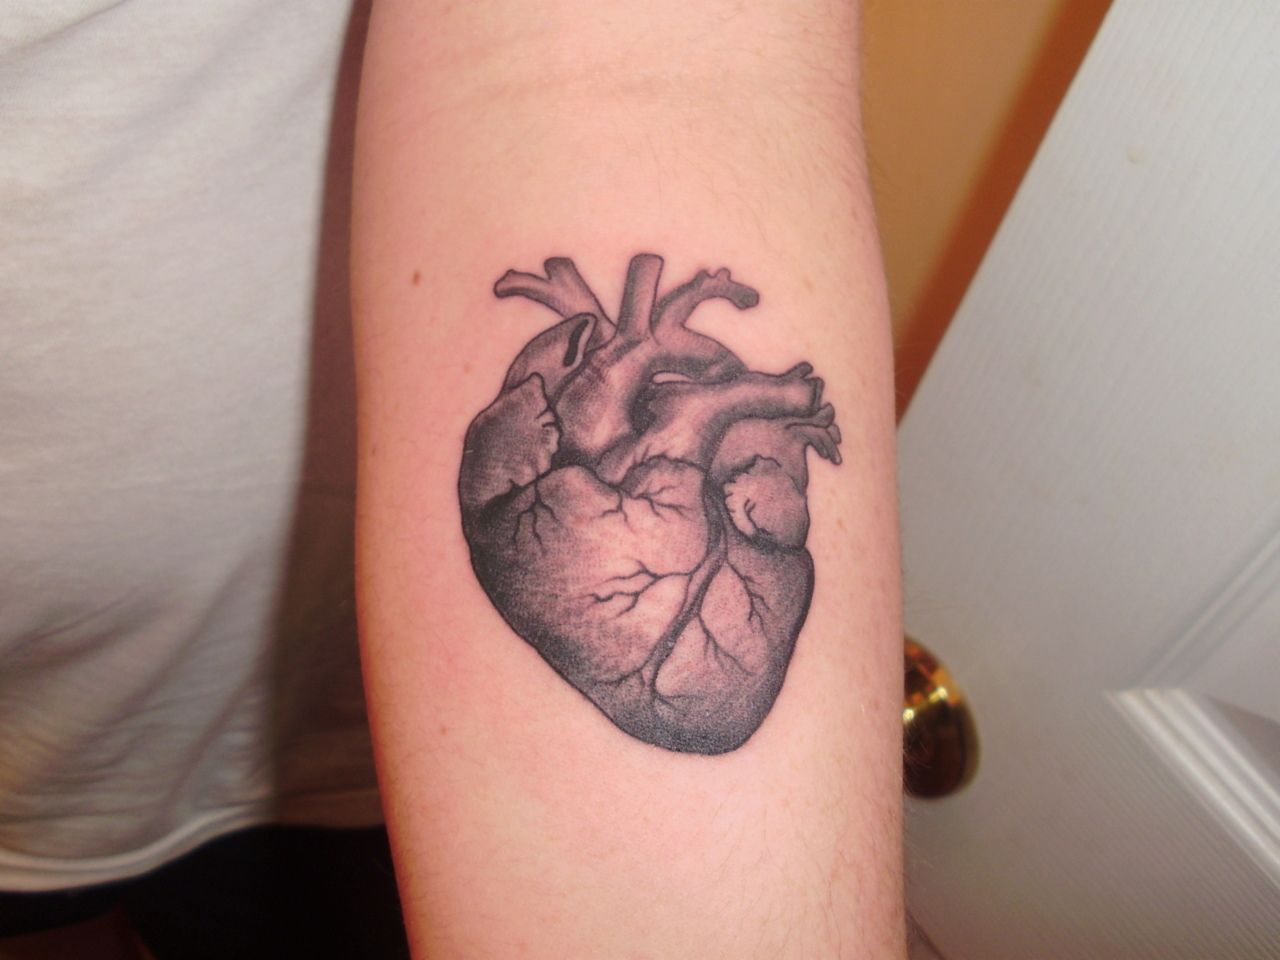 Real Tattoo: I Want A Real Heart Tattooed On My Back On The Right Side